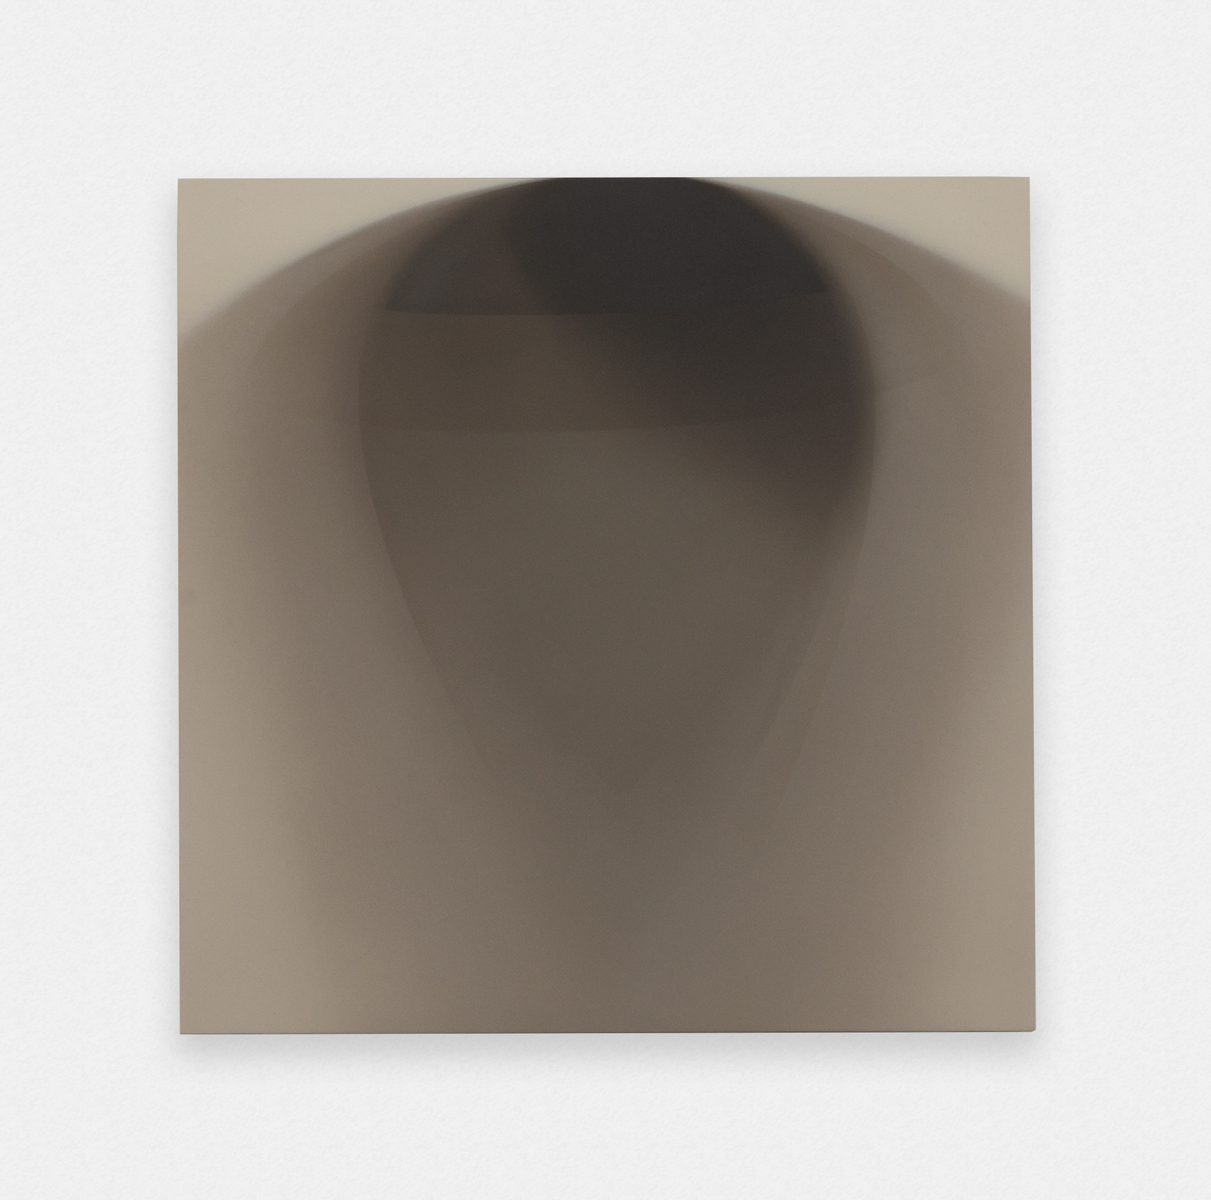 Matthew Metzger  The Shadow of The Record Single Side A  2015 Oil on MRMDF 11 ¾h x 11 ¾w in MMet002